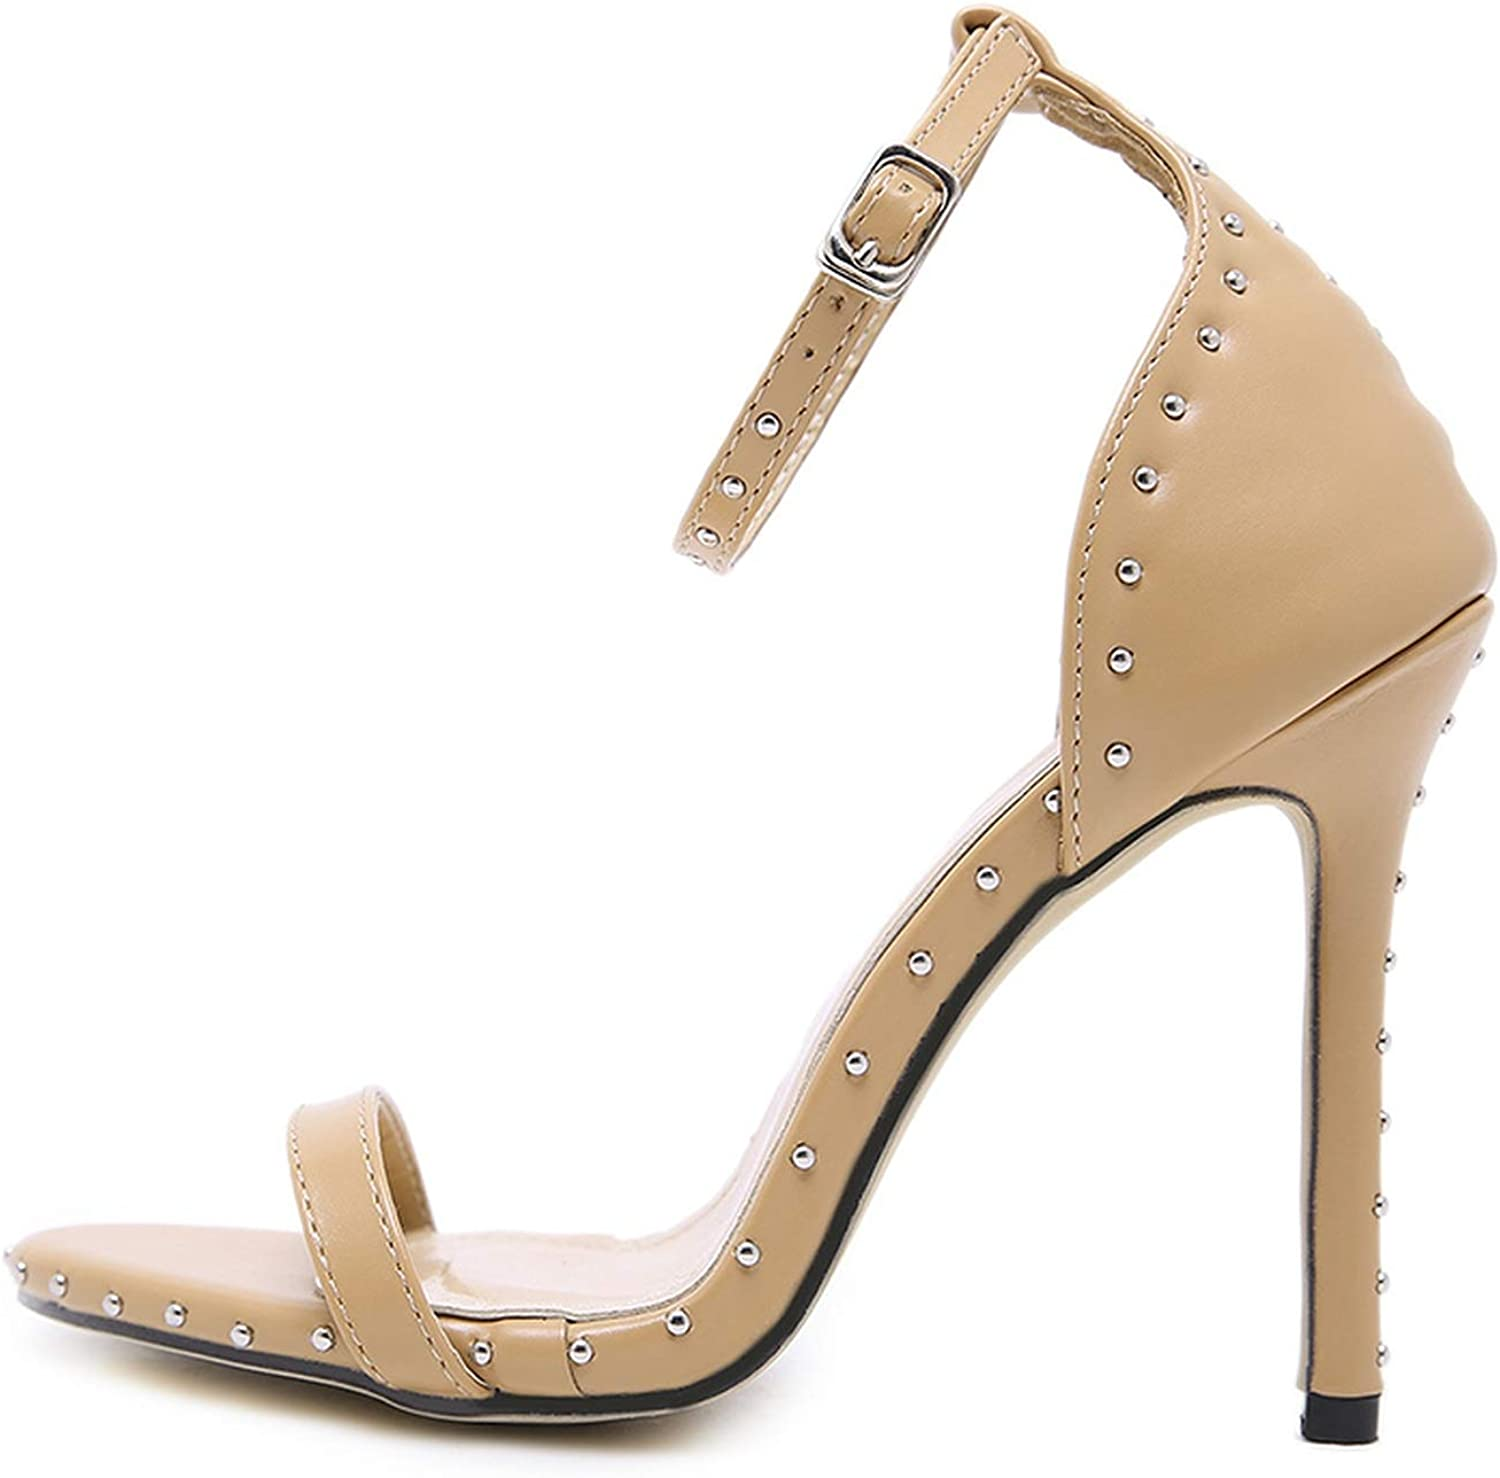 High Heels Sandals Women Ankle Strap Rivet Open Toe Thin Heels High shoes Rome Style shoes